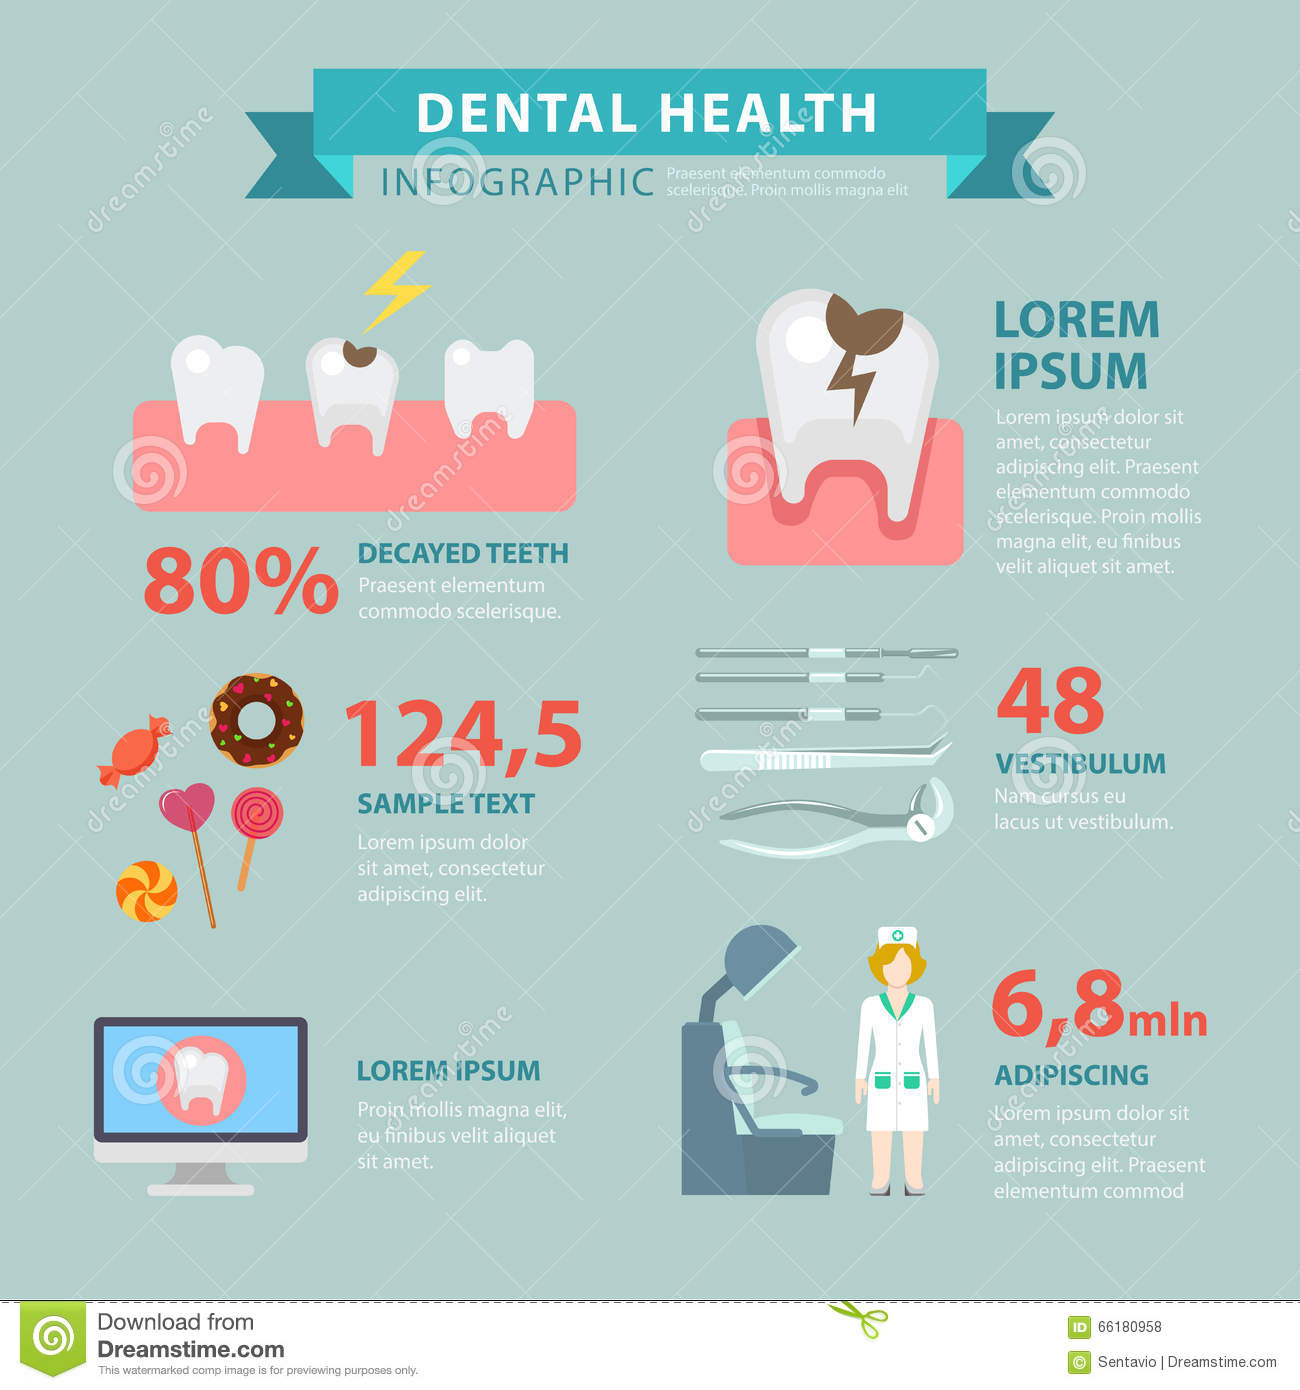 dental-health-flat-vector-infographic-to